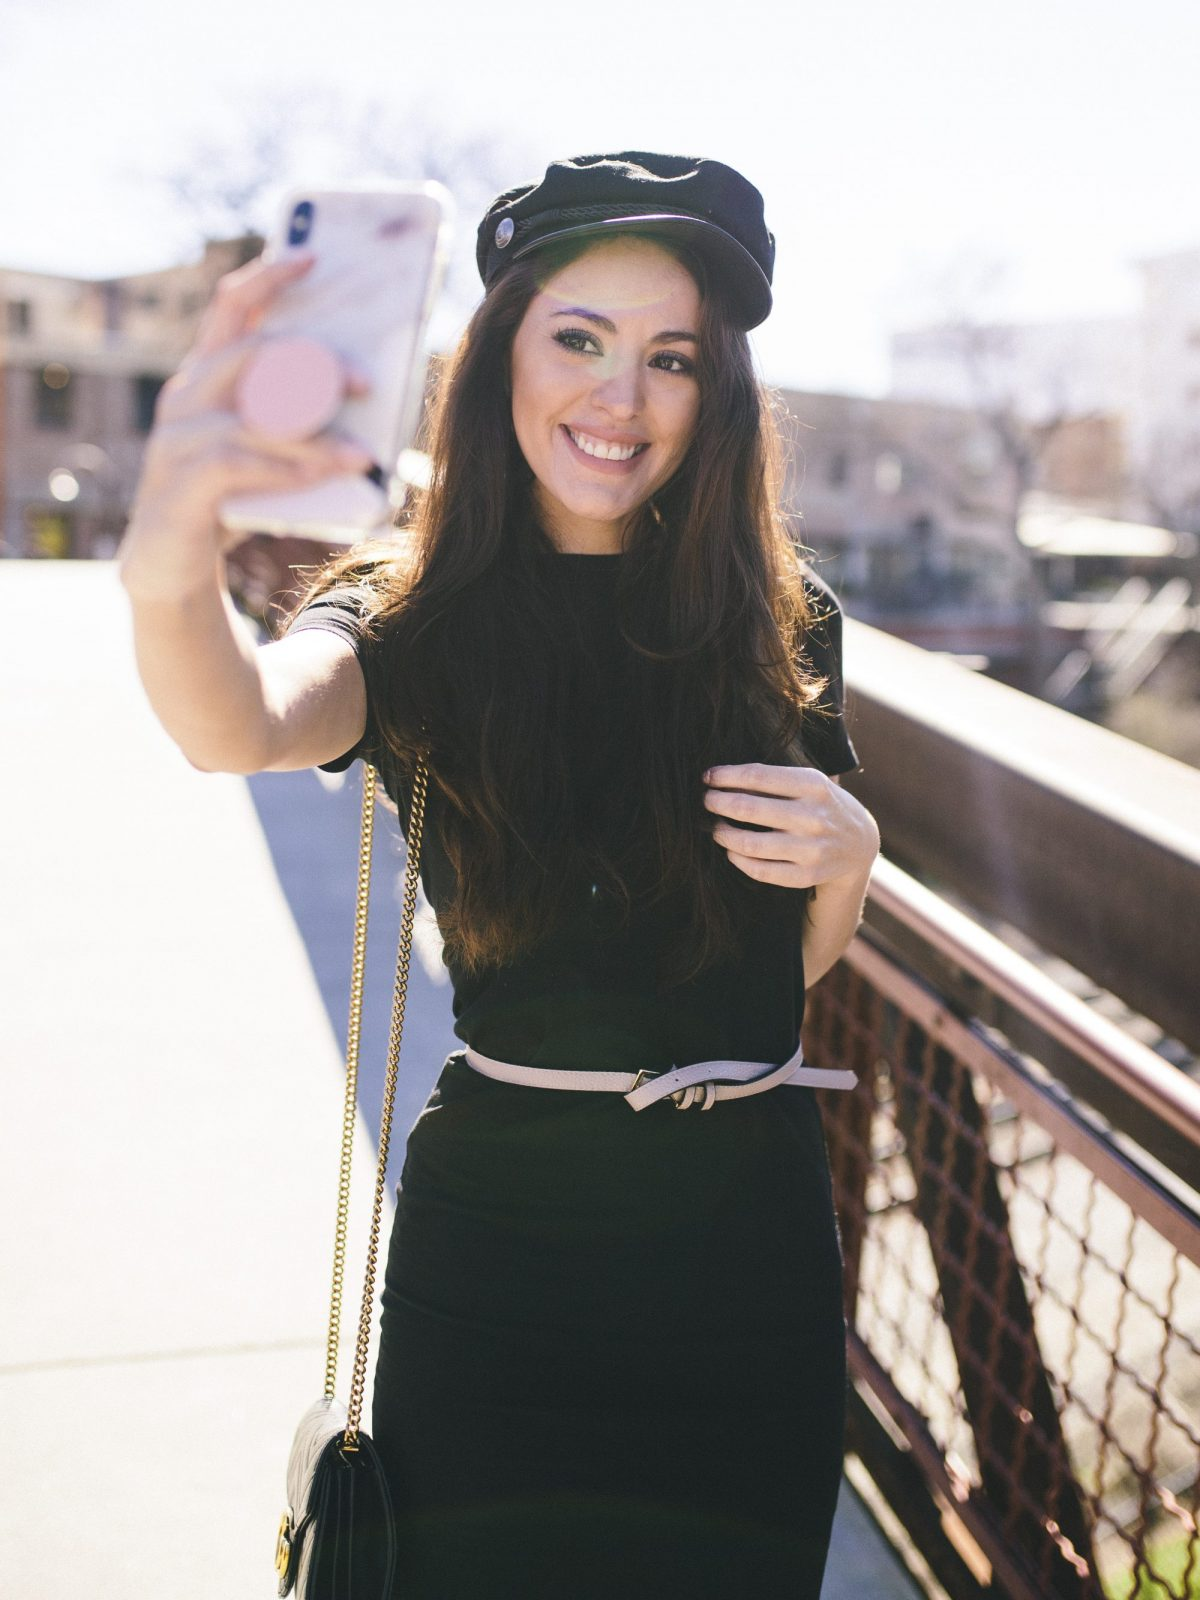 Gucci marmont, gg marmont, captain hat, hm captains cap, black tshirt dress, how to style a t shirt dress, how to wear a t shirt dress, trendy outfit ideas, jersey dress, bodycon day dress, bodycon tshirt dress